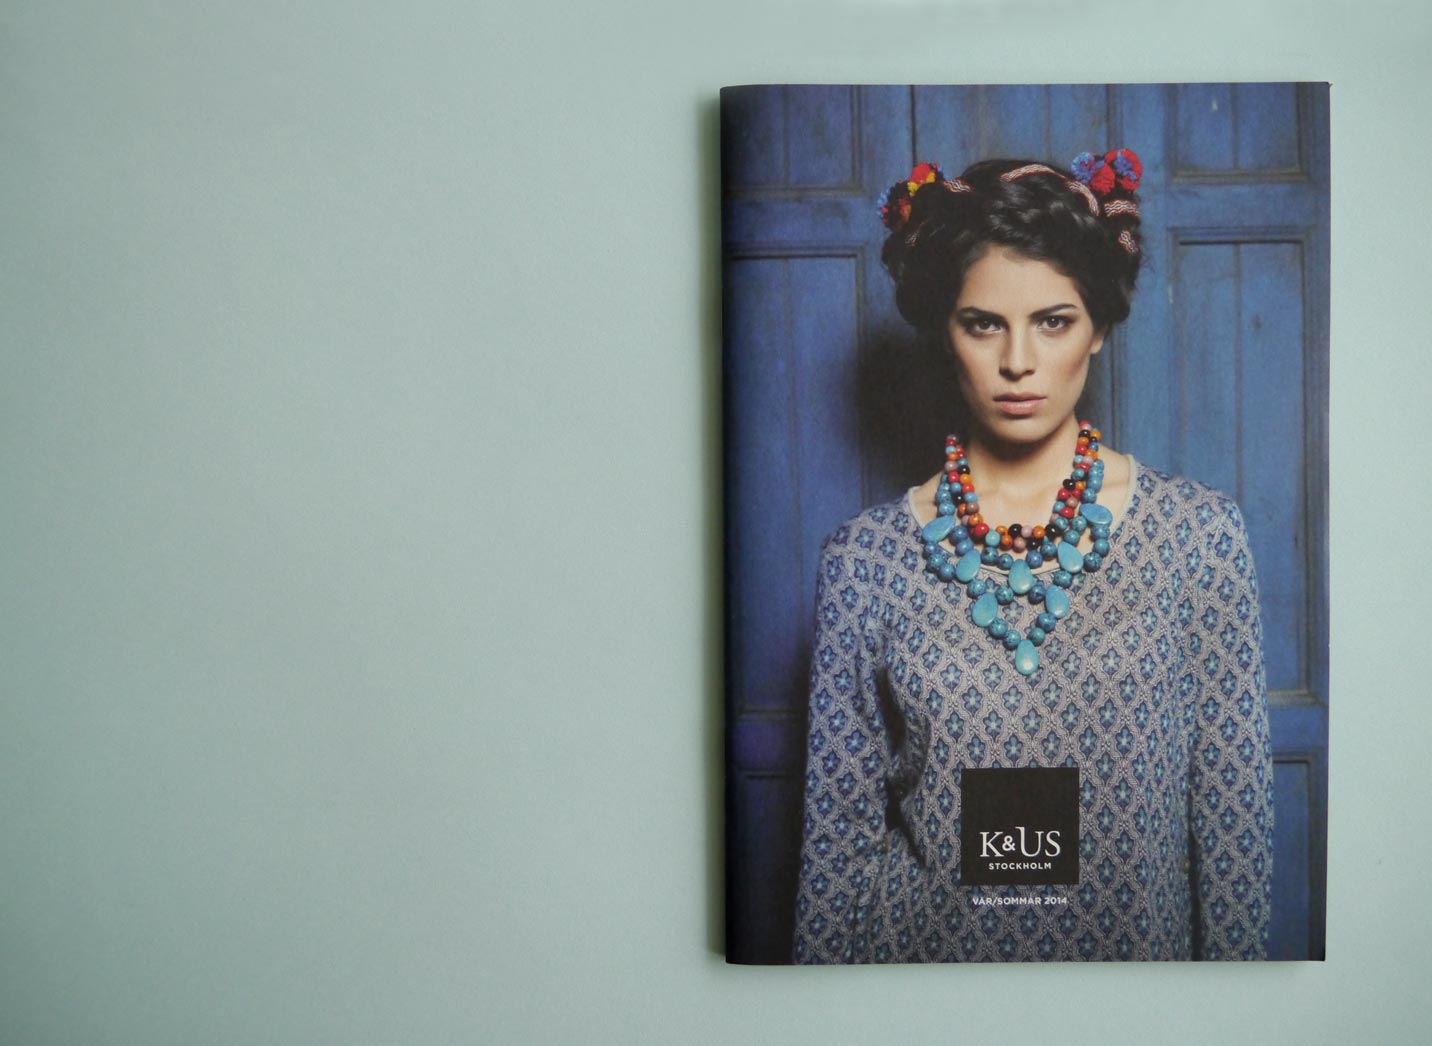 K&US S/S 2014 catalogue